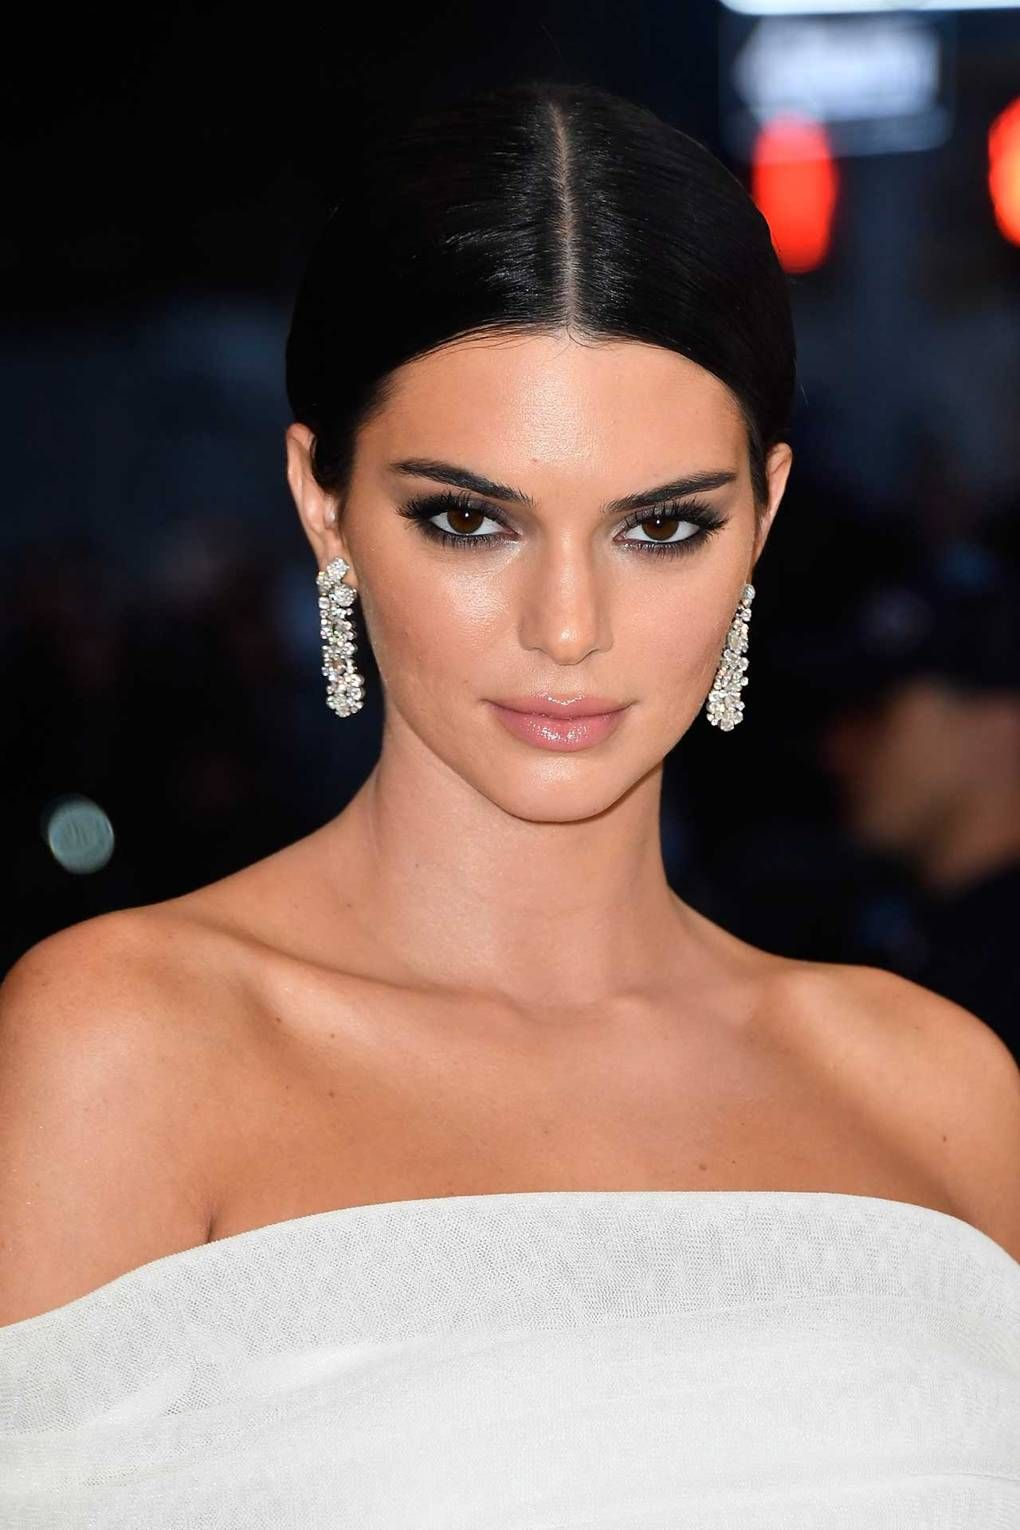 Kendall Jenner. 2018-2019 celebrityes photos leaks!